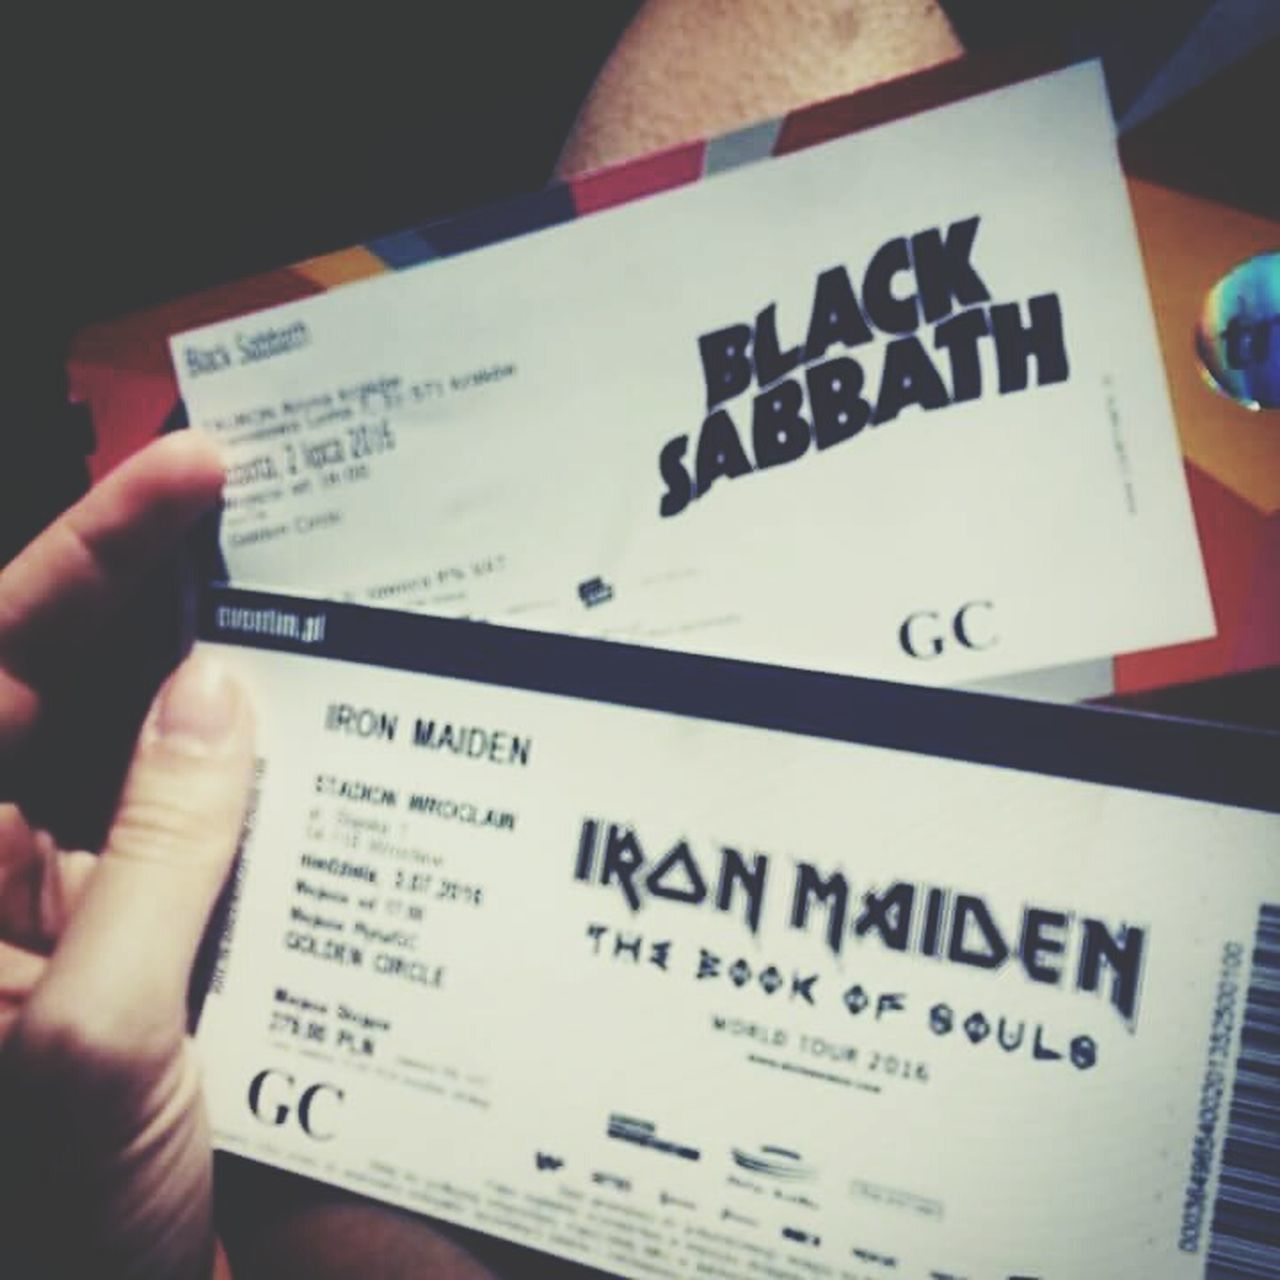 Best weekend ever! ❤❤👹MetalLover Ozzyosbourne Ozzy Blacksabbath Ironmaiden Brucedickinson Heavy Metal Metalhead Metal Concert Gig Performance Legends